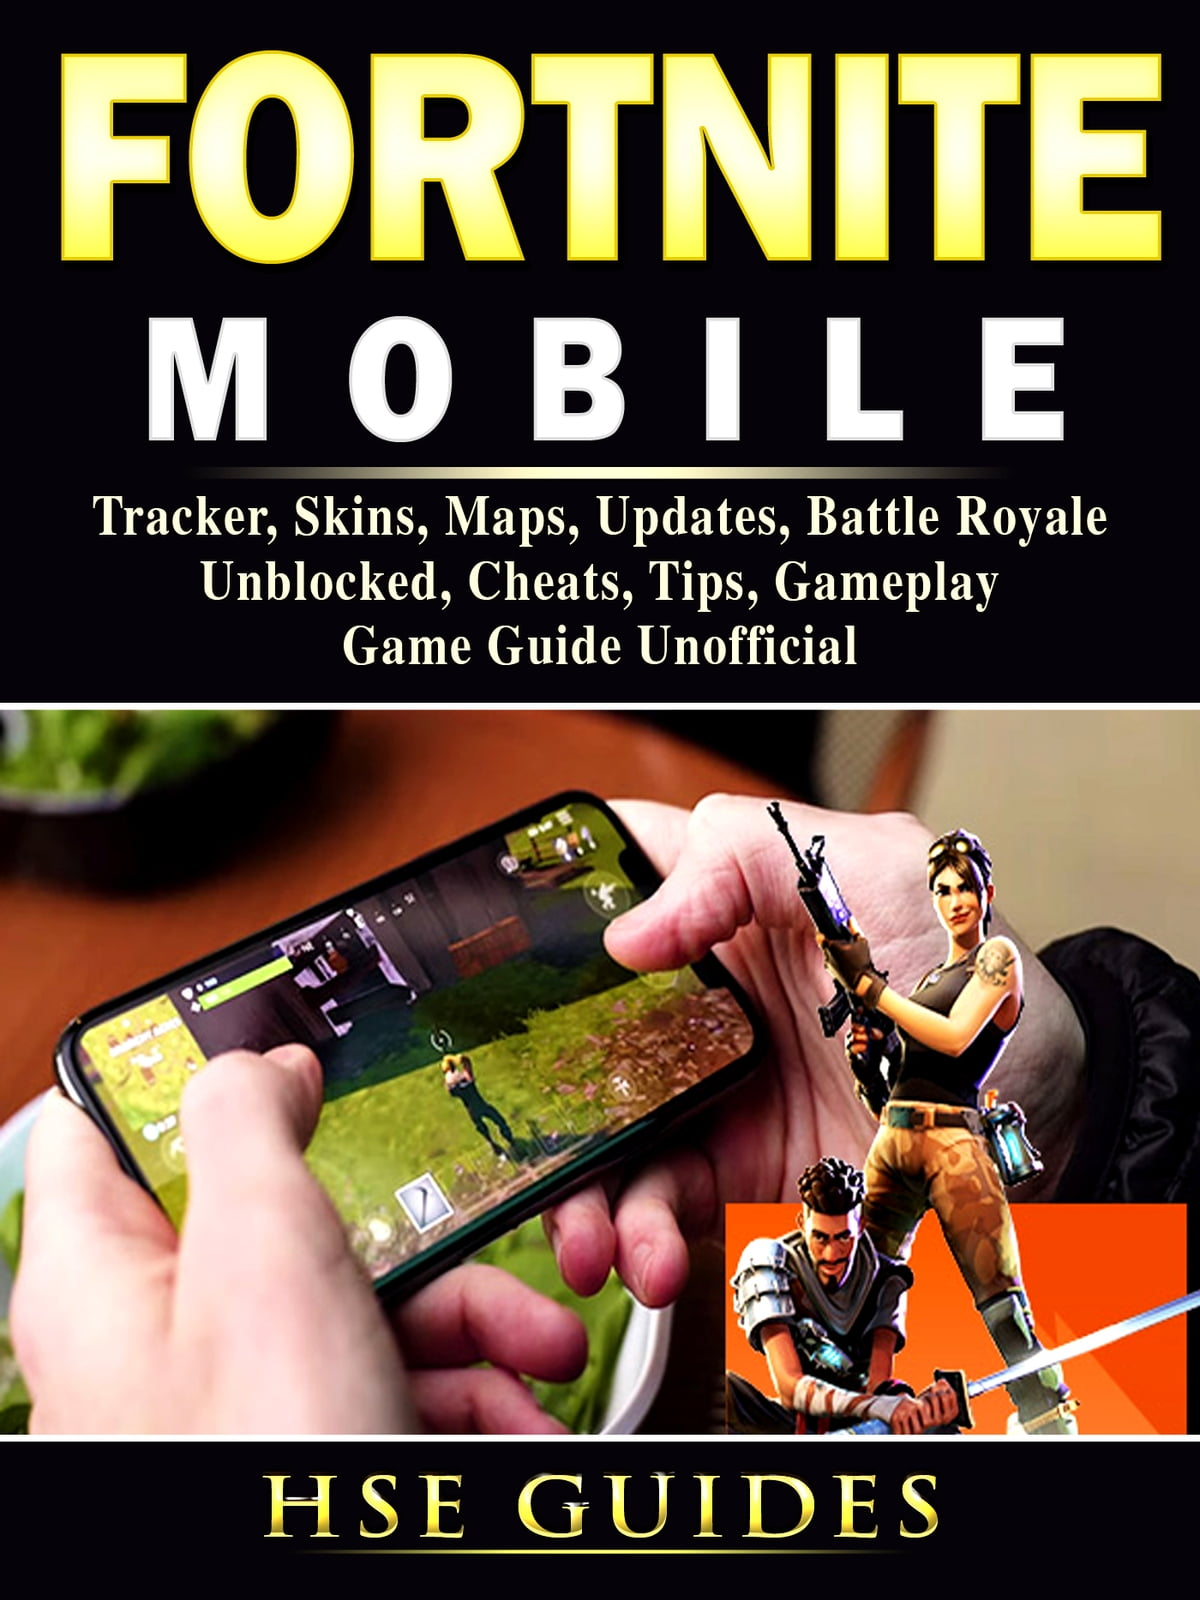 Fortnite Mobile, Tracker, Skins, Maps, Updates, Battle Royale, Unblocked, on minecraft play now, minecraft herobrine, minecraft enderman, minecraft weebly, minecraft best server ever, minecraft play awesome andawesomeet, minecraft sp viper squad, minecraft firewall, minecraft pocket edition title, minecraft parkour server ip, minecraft logo, minecraft purchased by microsoft, minecraft skins, minecraft pe latest version, minecraft awesome and sweet play, minecraft pc release date, minecraft bot, minecraft mansion server address, minecraft school,